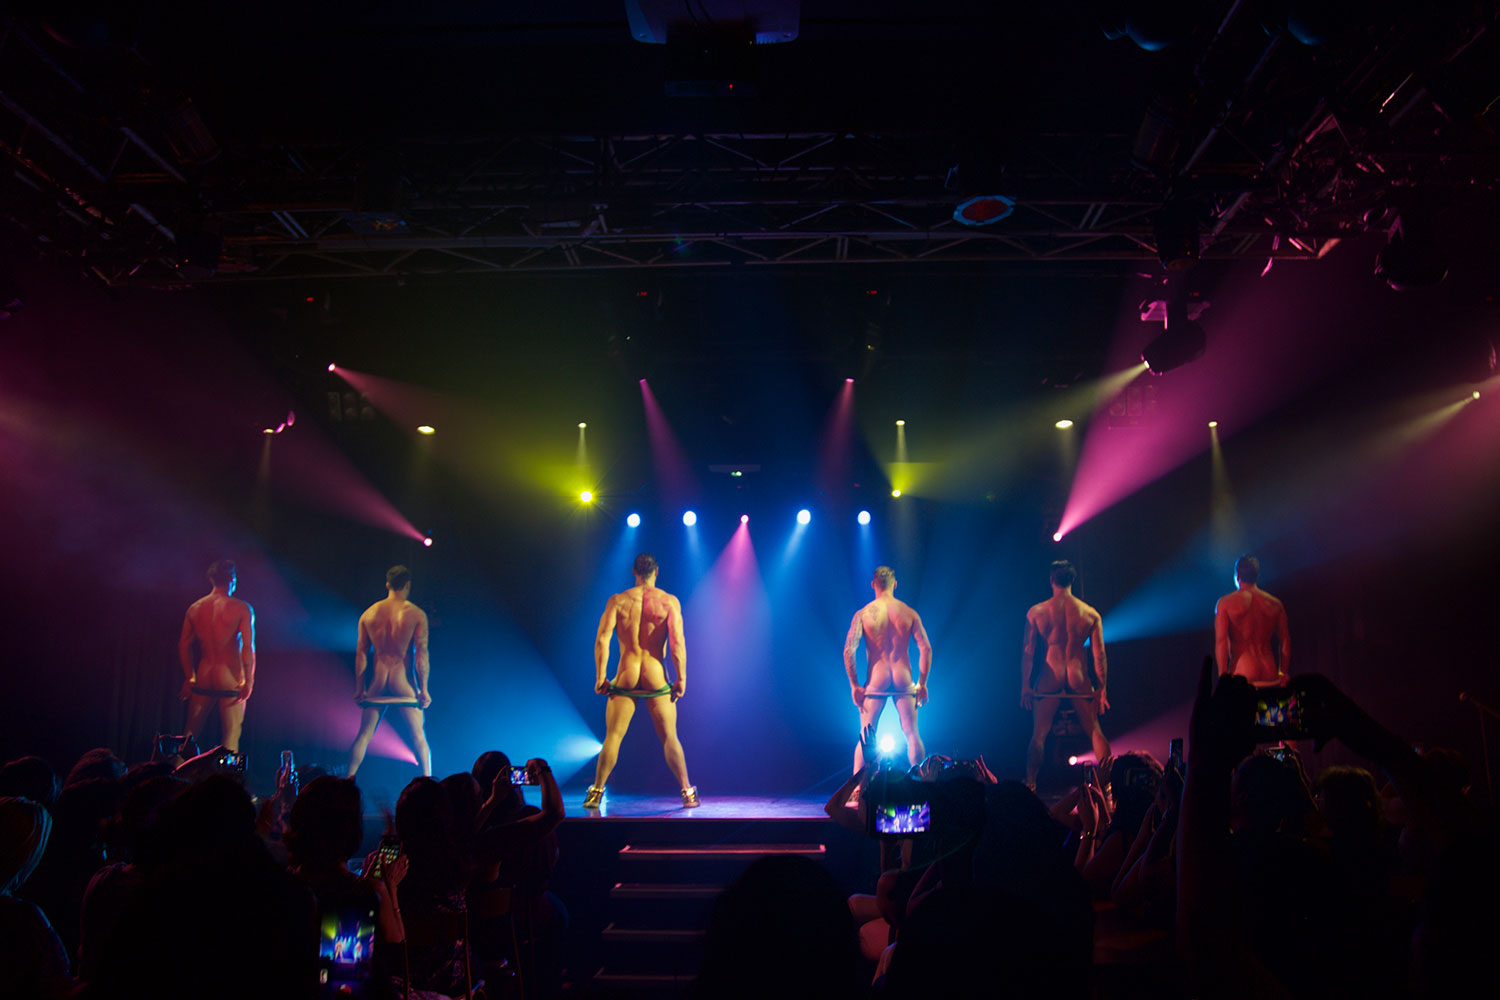 Thunder From Down Under - Butts, male revue, backstreet butts